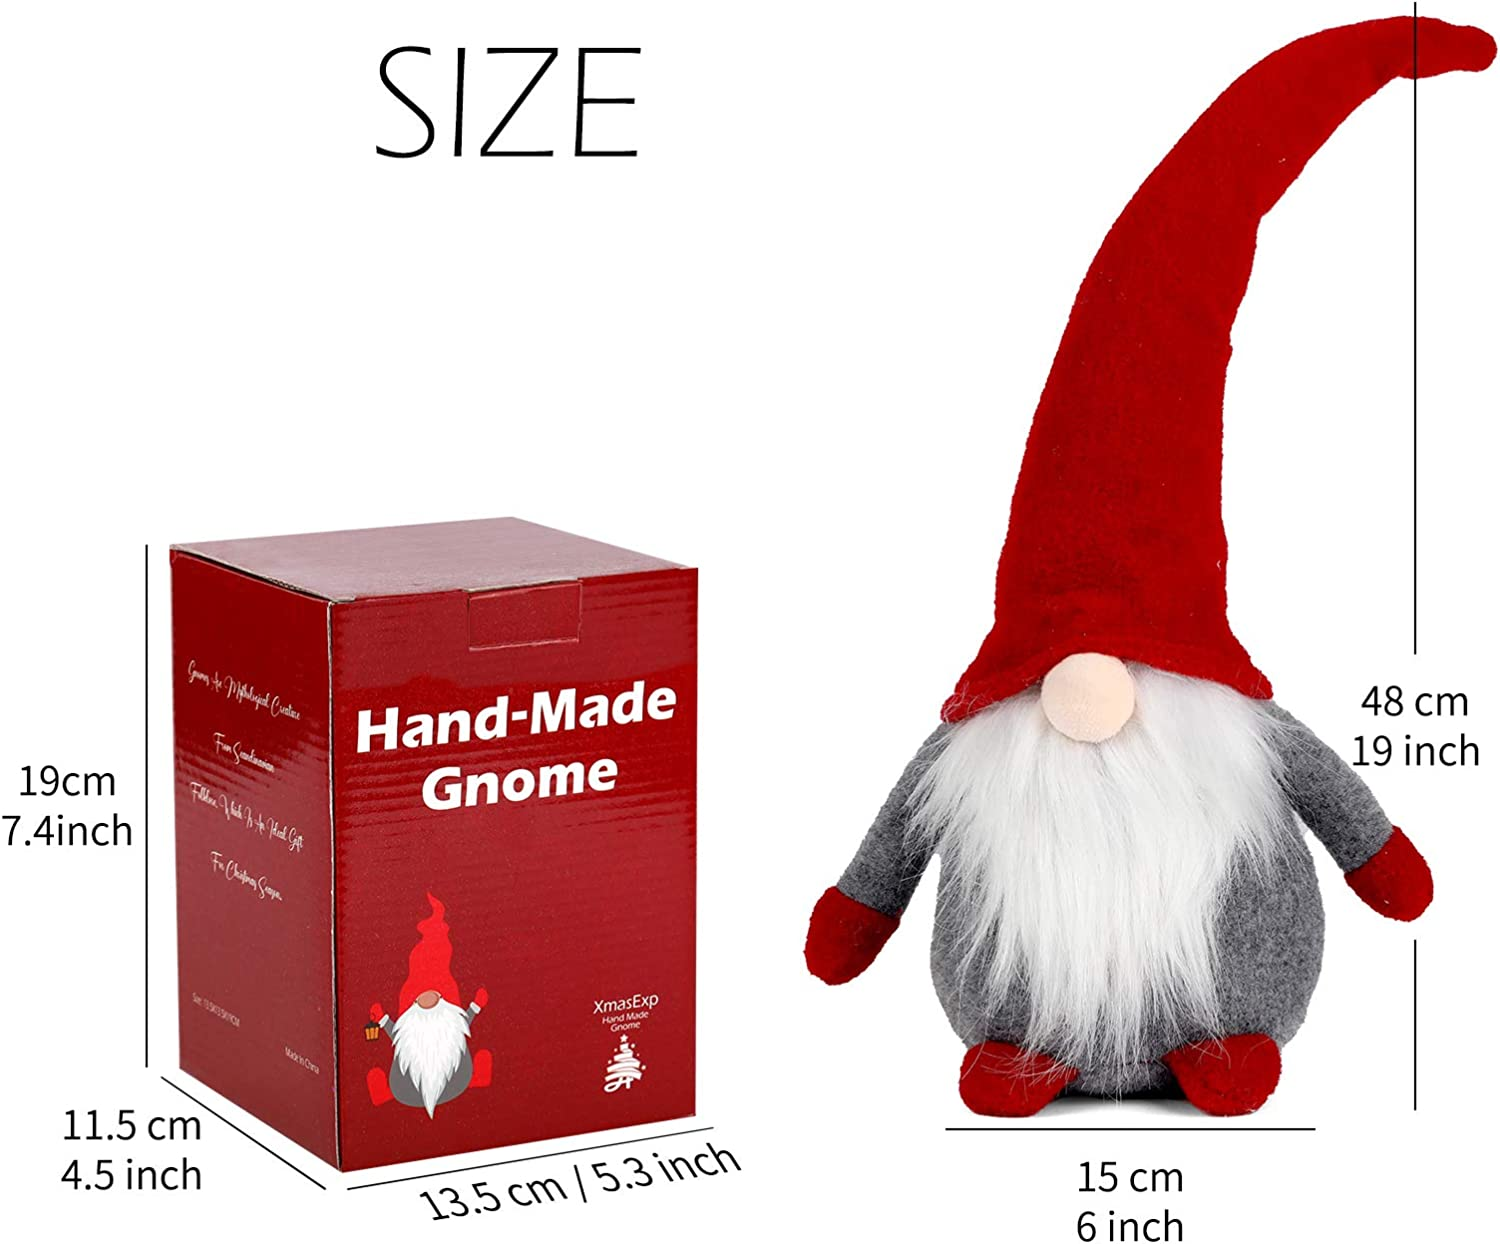 16Inch Red Figurines For the Christmas Tree Decor Handmade Swedish Gnome Plush Christmas Santa Home Decoration Indoor Outdoor Gnomes Naughty Plush Elf Toy Winter Table Ornament Holiday Presents